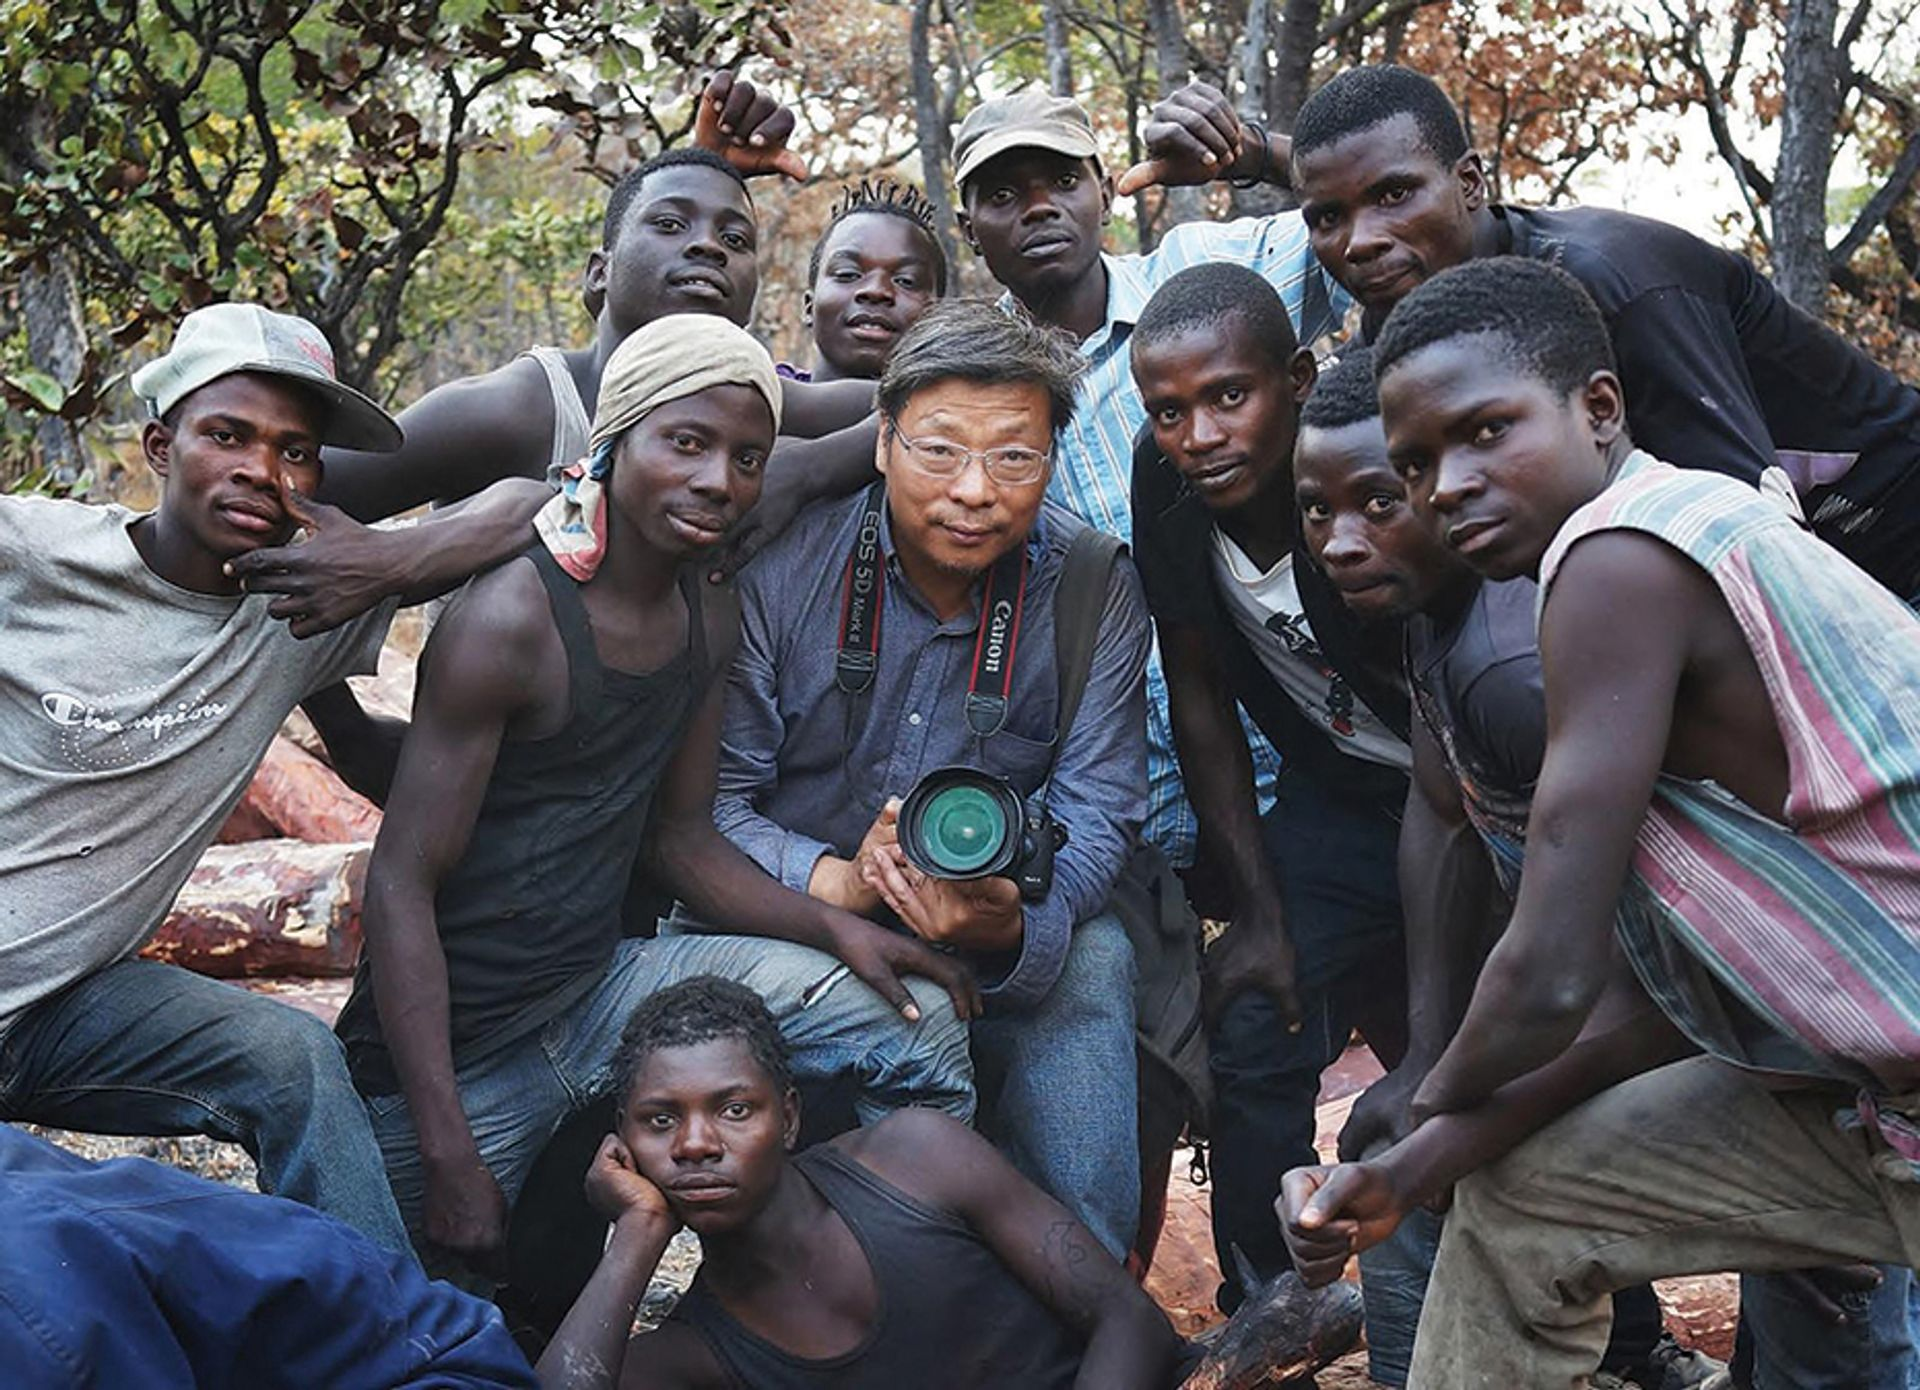 Lu Guang with loggers in the Democratic Republic of Congo in August 2016. © Lu Guang